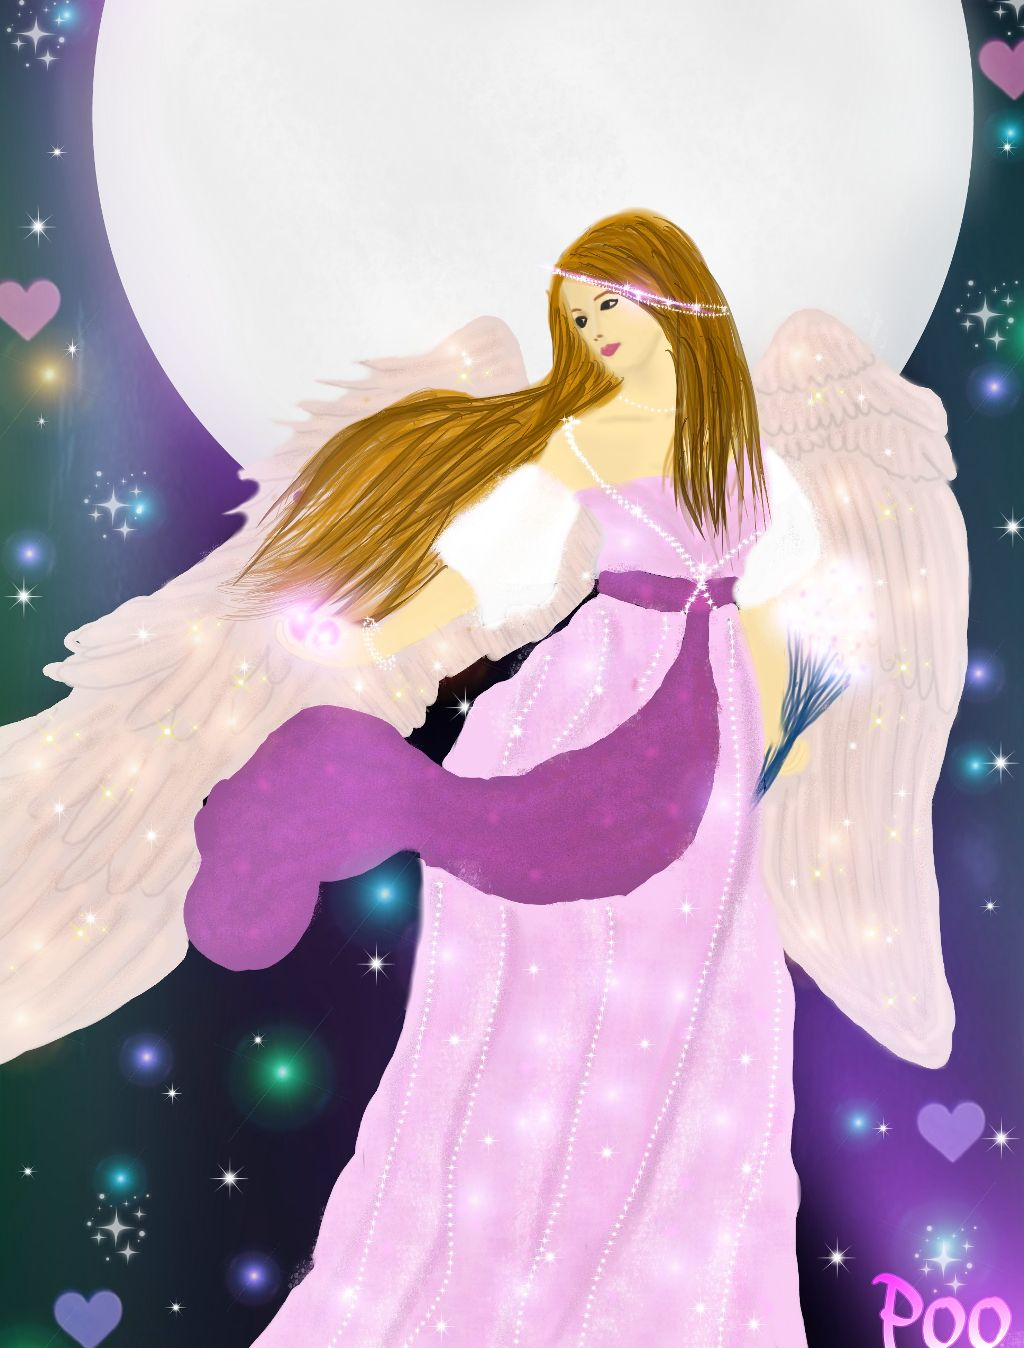 Angels are the perfect example of magic.😉 #dcmagic#drawing#magic#angel#beautiful